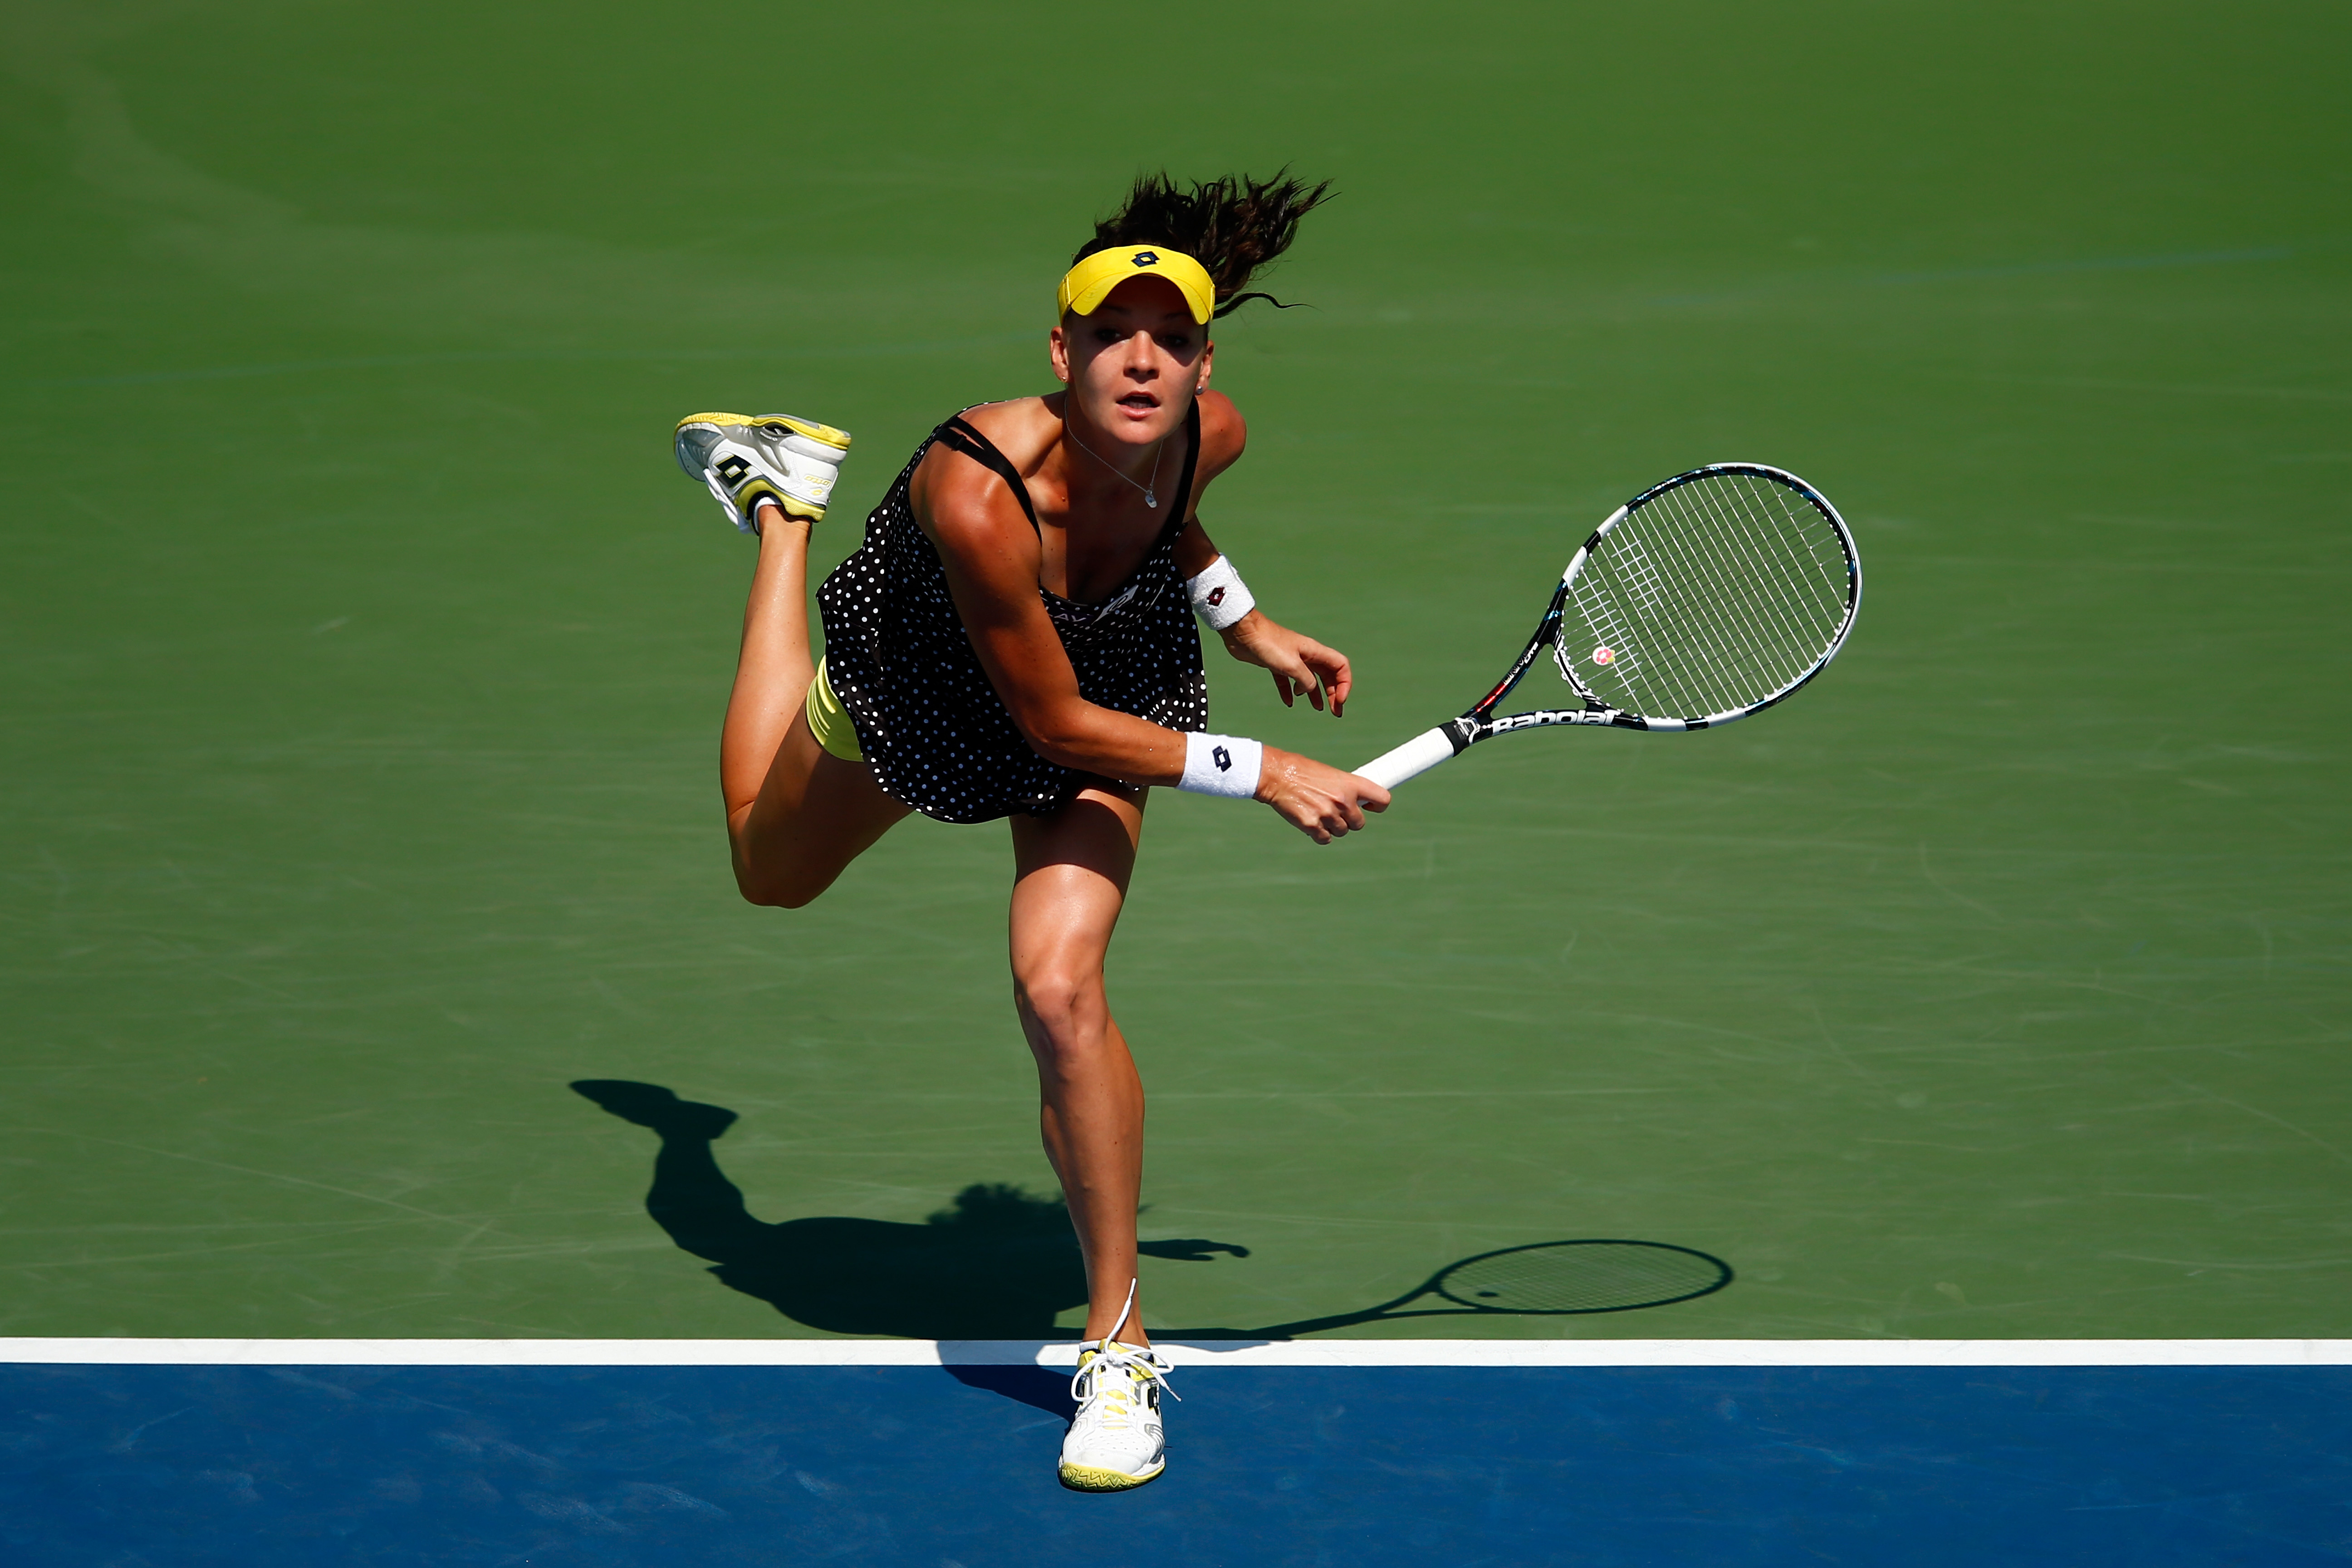 <b>Agnieszka Radwanska</b> What she lacks in power, she makes up for in cunning. Agnieszka Radwanska, relies on tactical accuracy and her understanding of geometry to outfox her opponents, skills that have drawn comparisons to Martina Hingis.